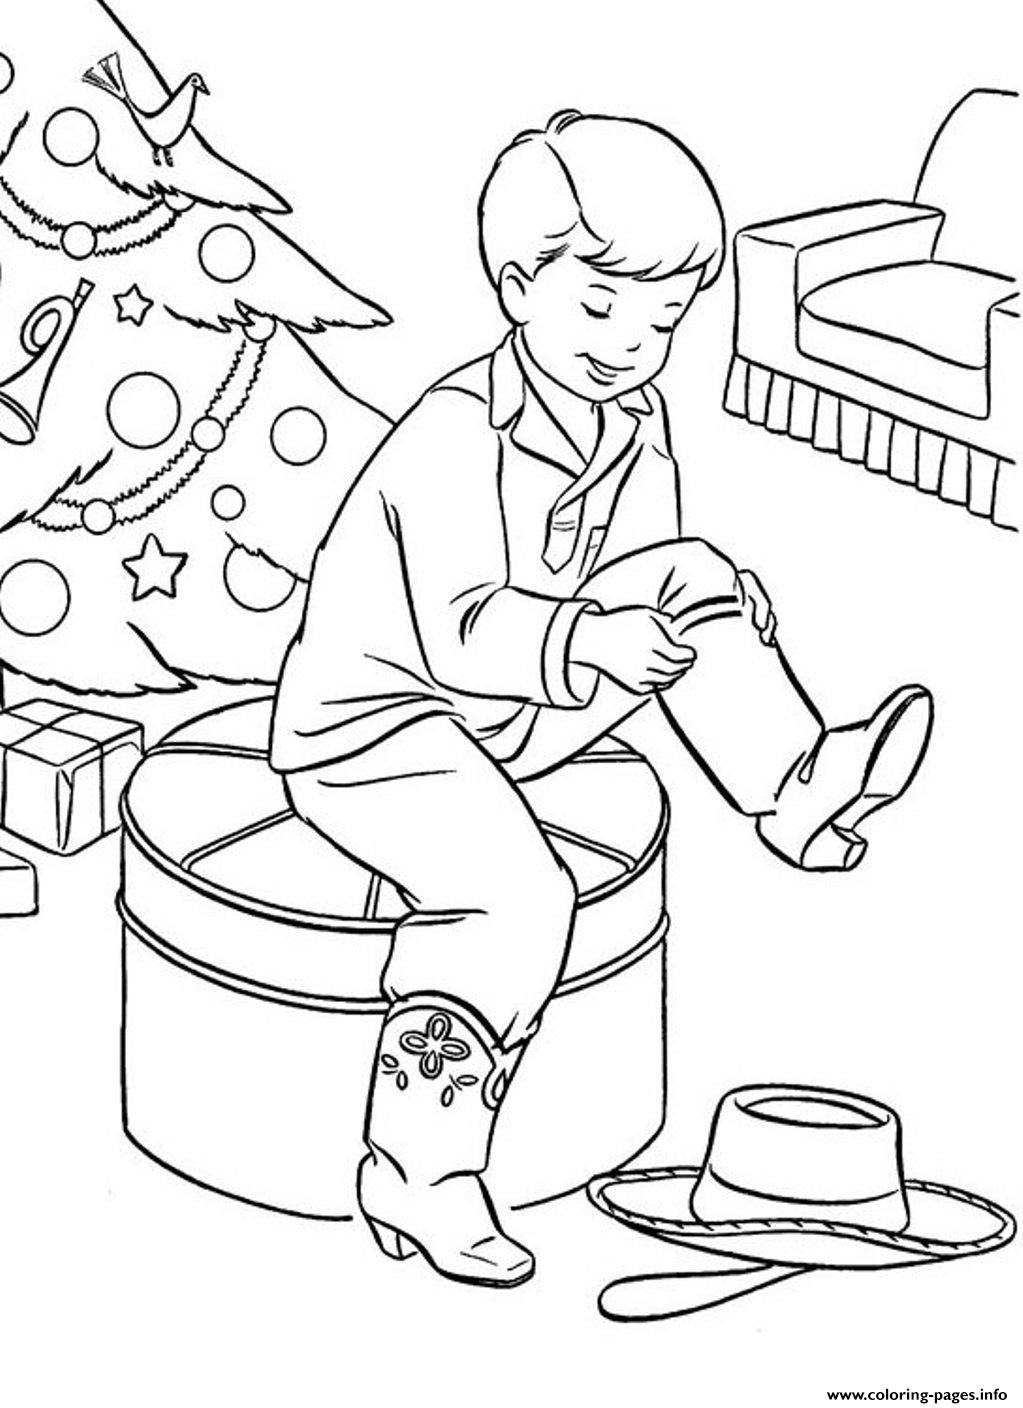 Christmas Boots For Present0357 Coloring Pages Printable